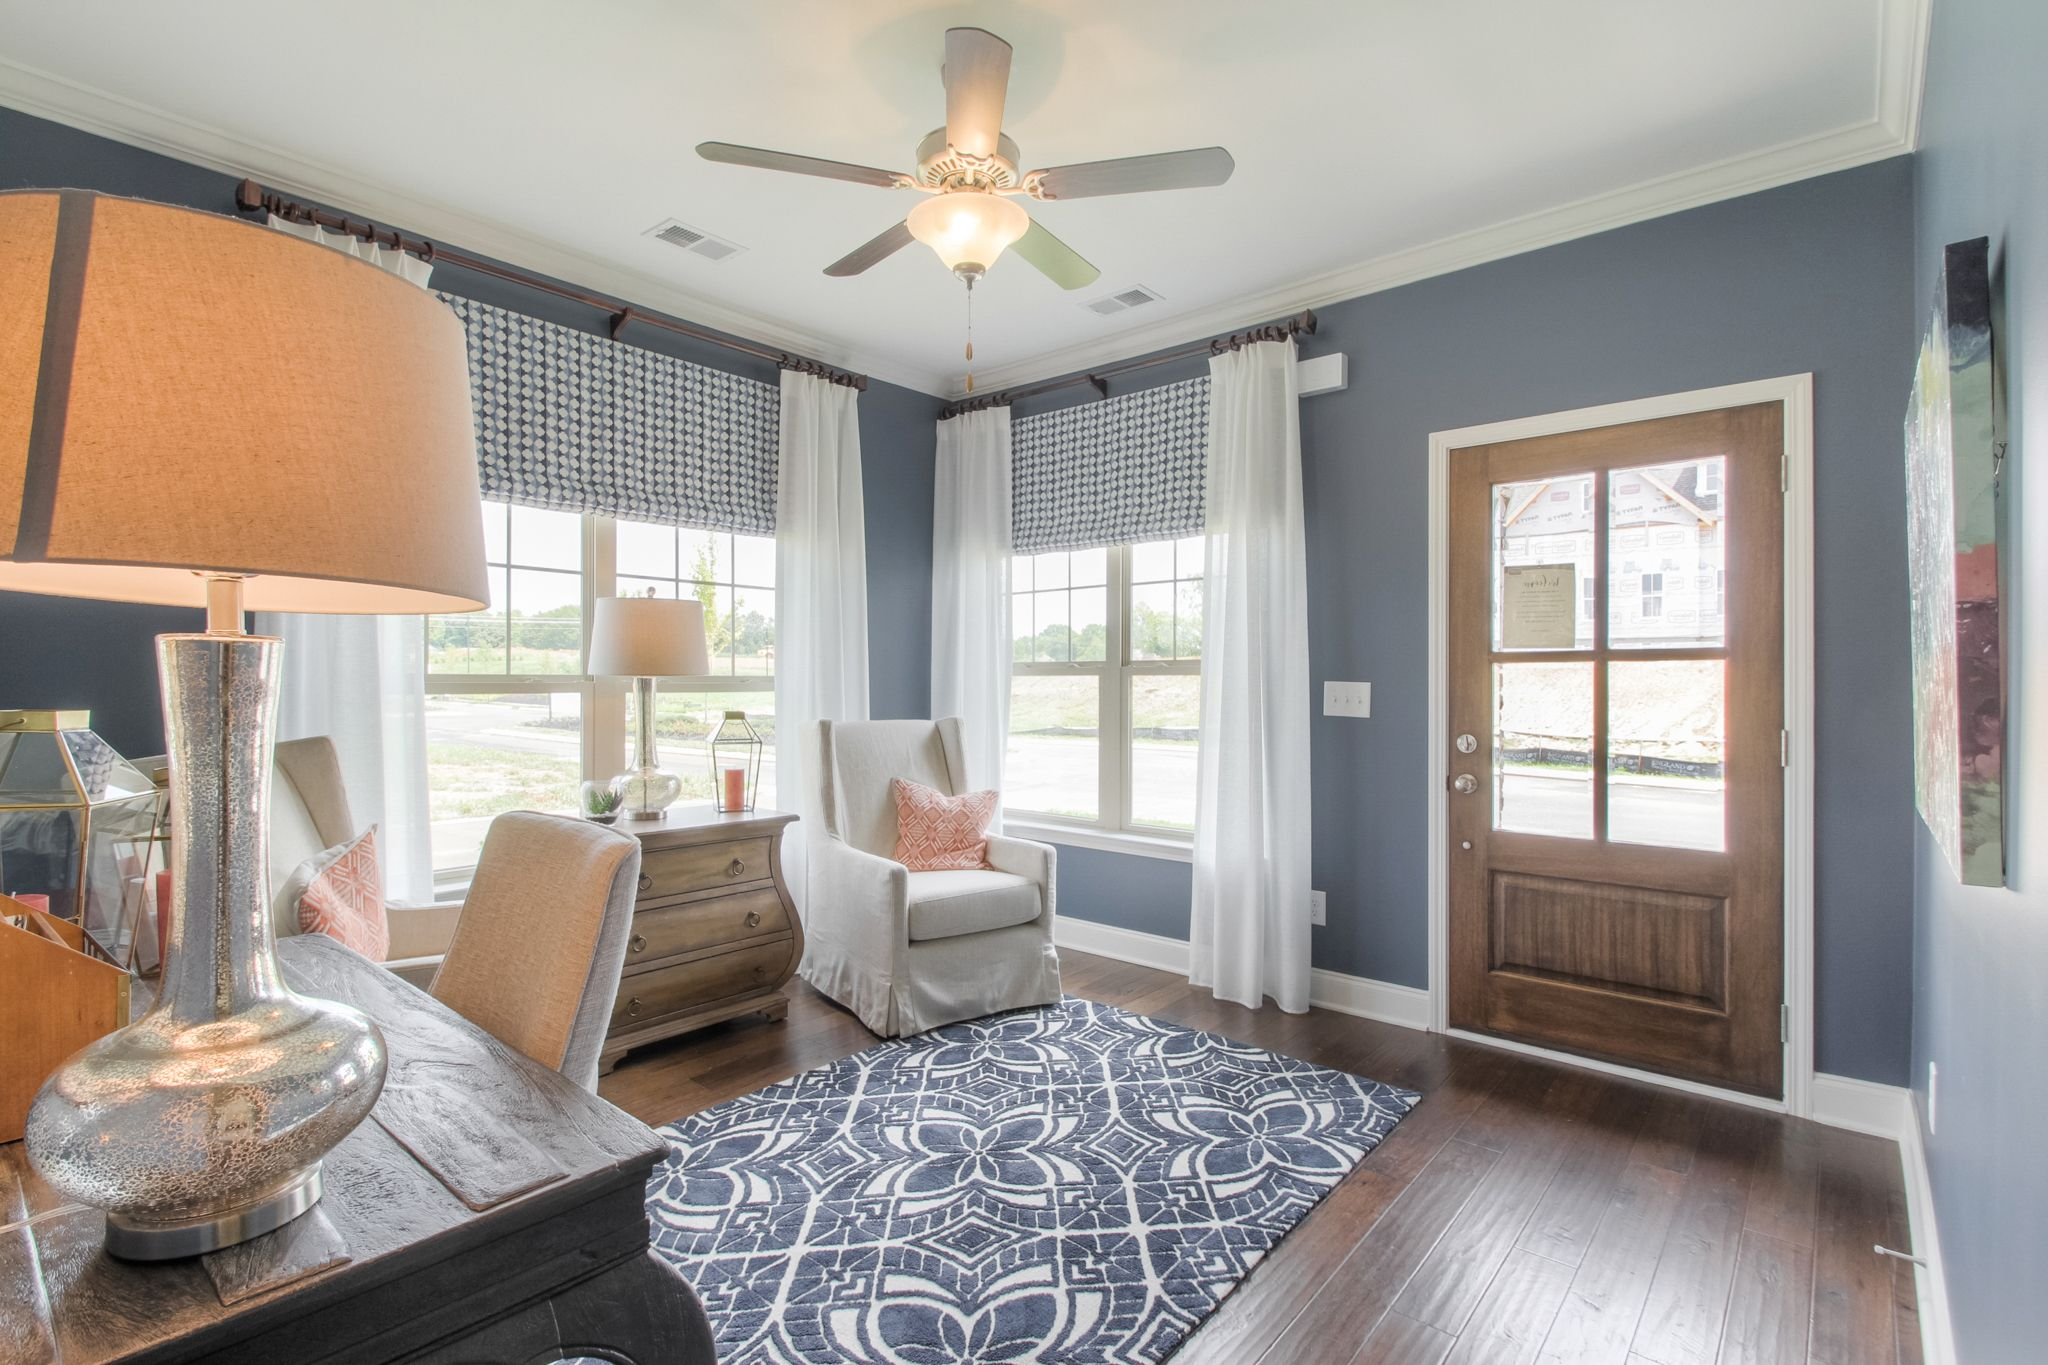 Living Area featured in The Raleigh Courtyard Cottage By Goodall Homes in Chattanooga, GA